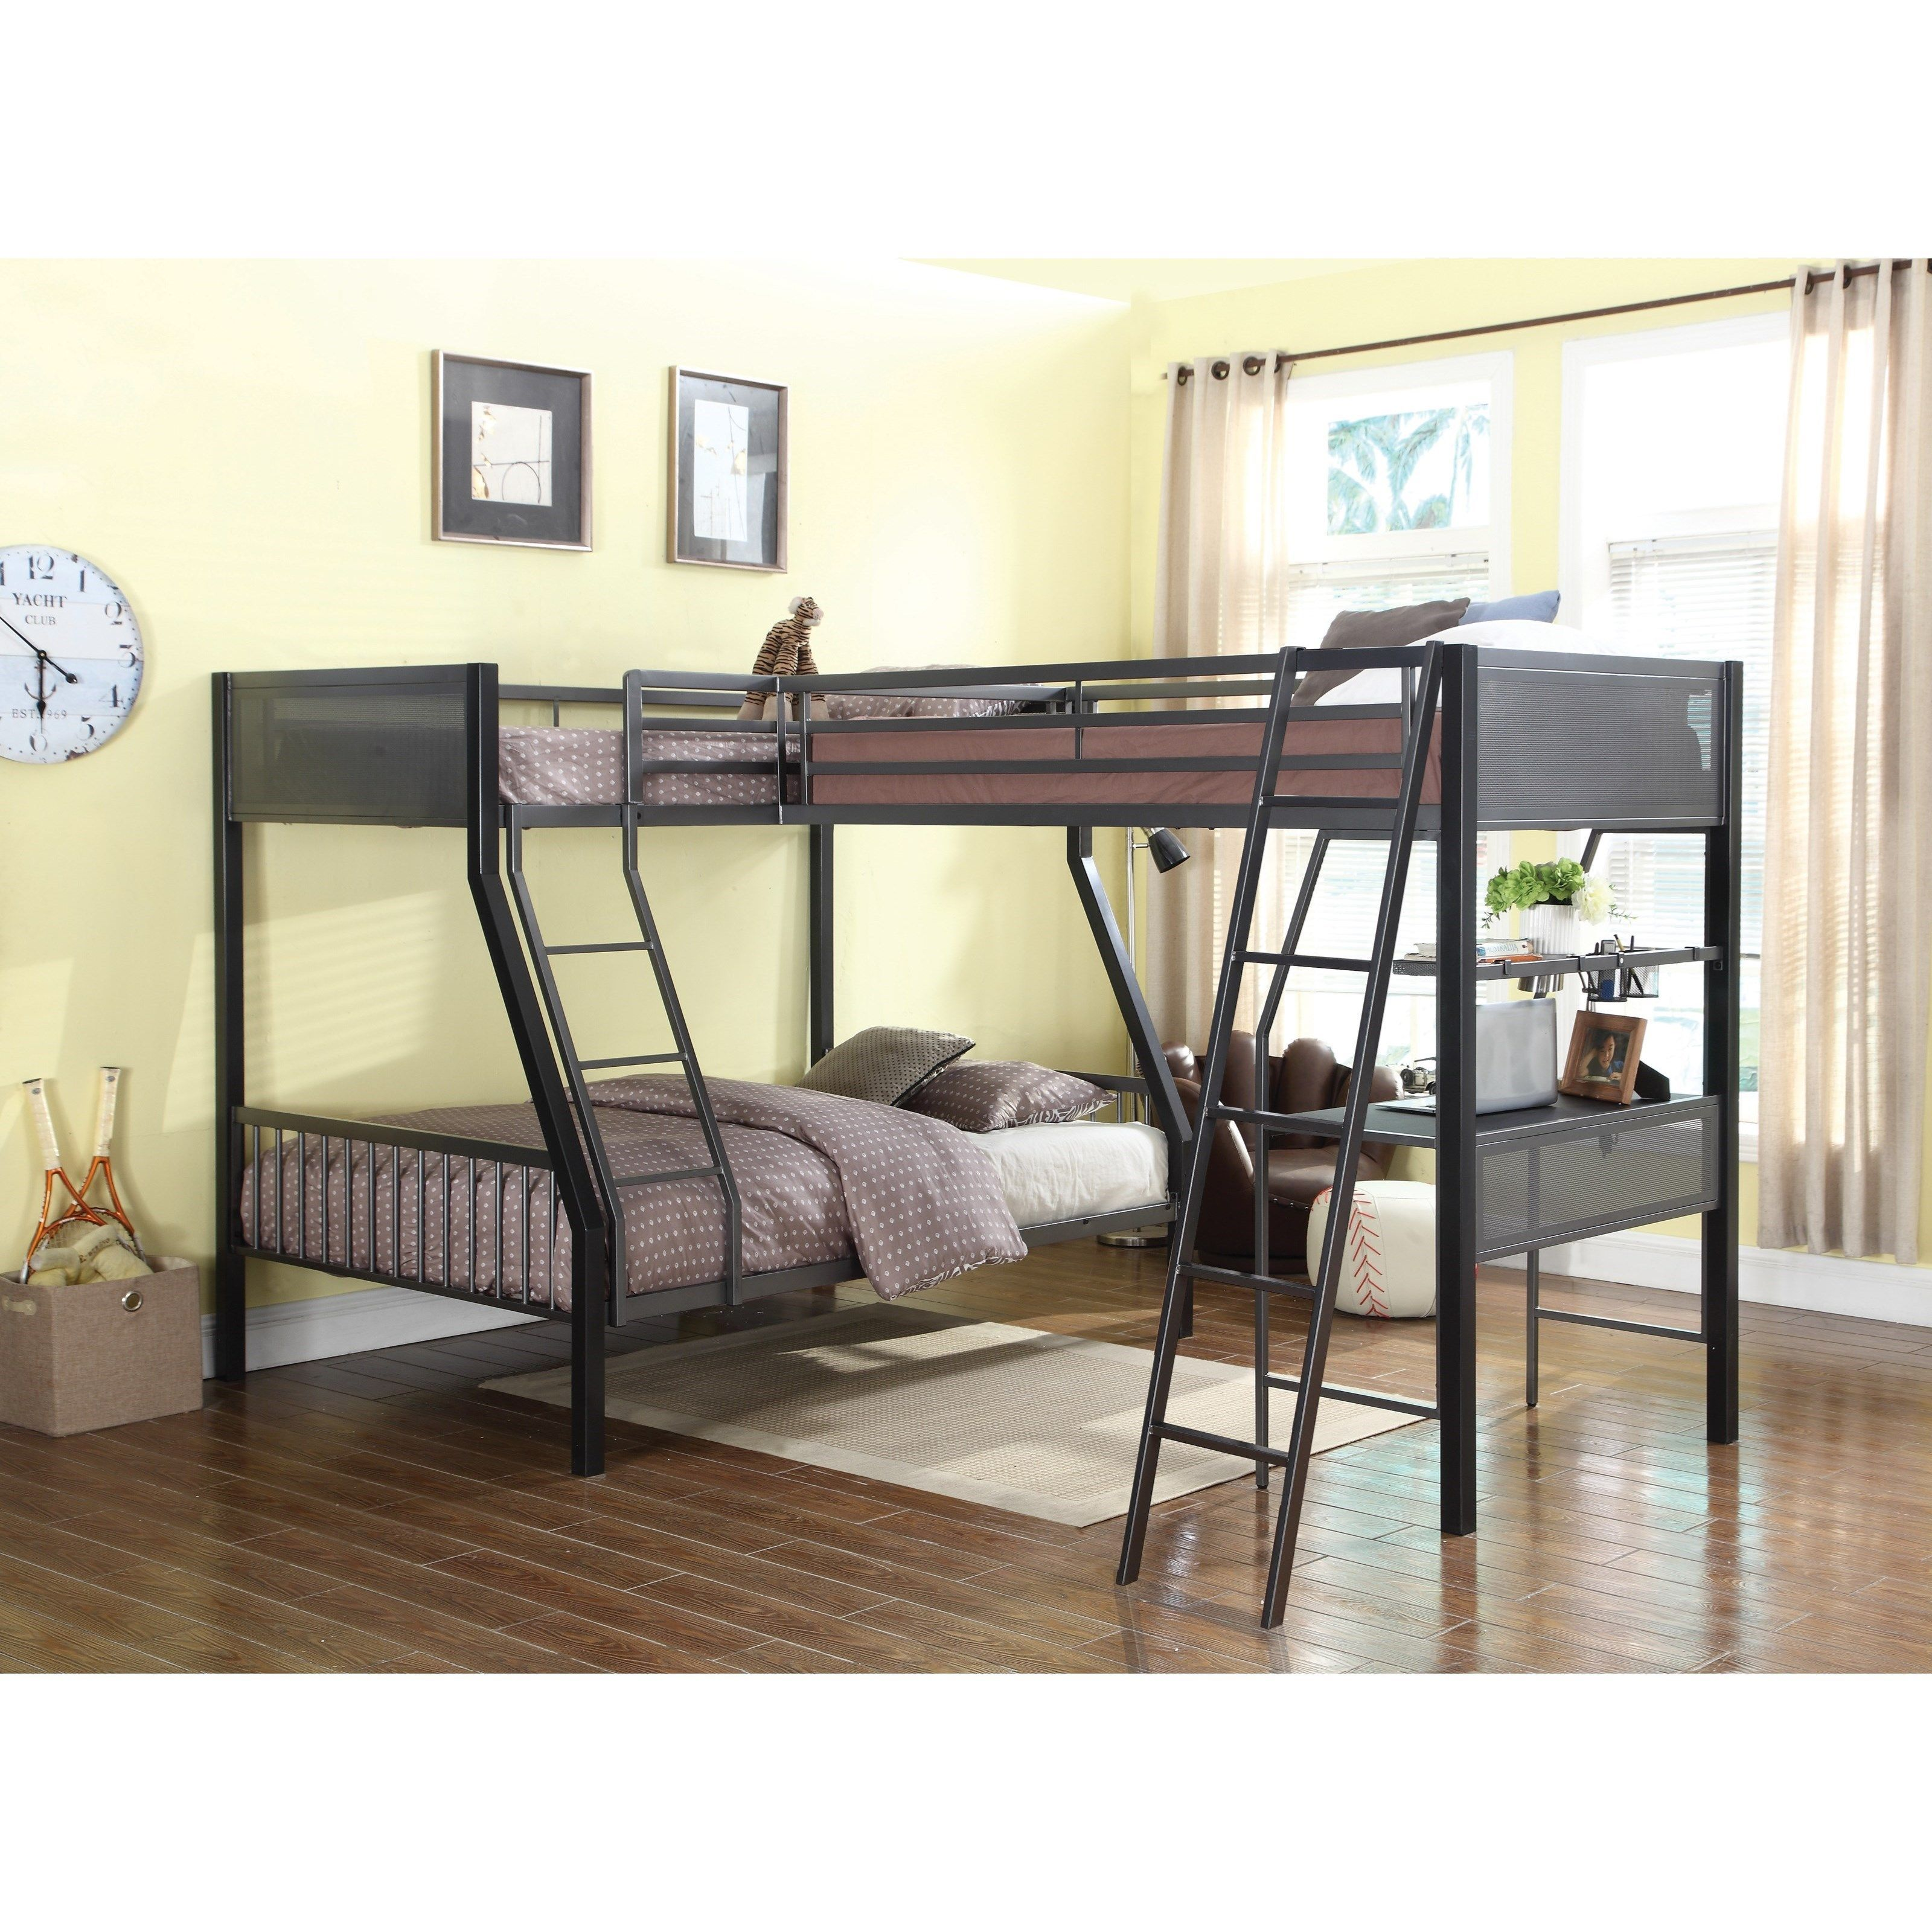 Bunks Twin Over Full Bunk Bed With Loft By Coaster